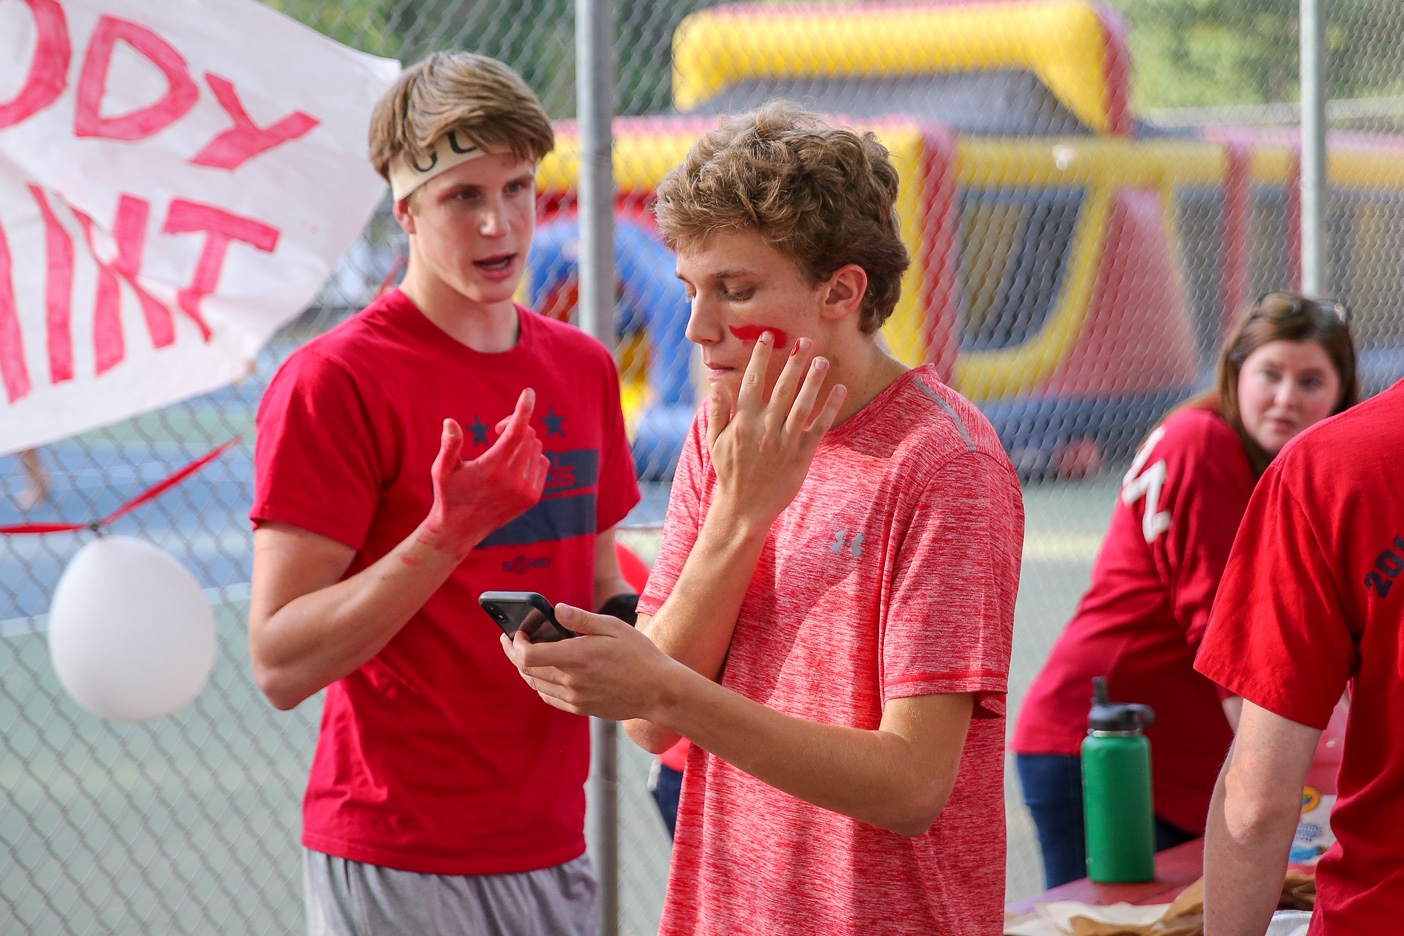 Sophomore Aaron Bremser and senior Pierce Laszlo work to get properly spirited for the tailgate. Since the game is a red out, they deck themselves up in red paint to support the Highlanders.